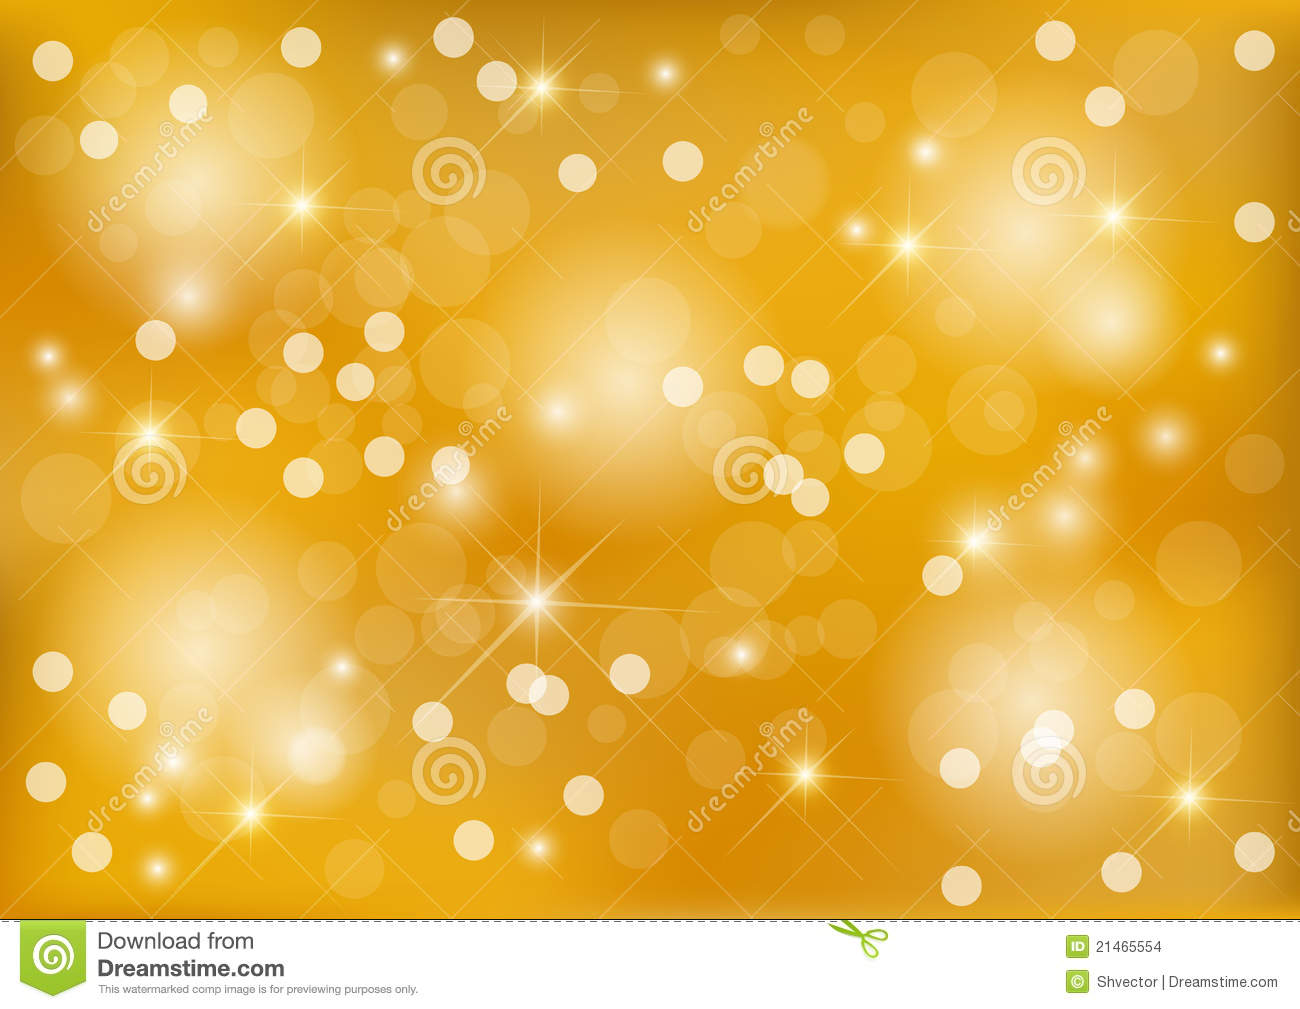 Falling From Stars Wallpaper Bright Yellow Dot Background Stock Vector Image 21465554